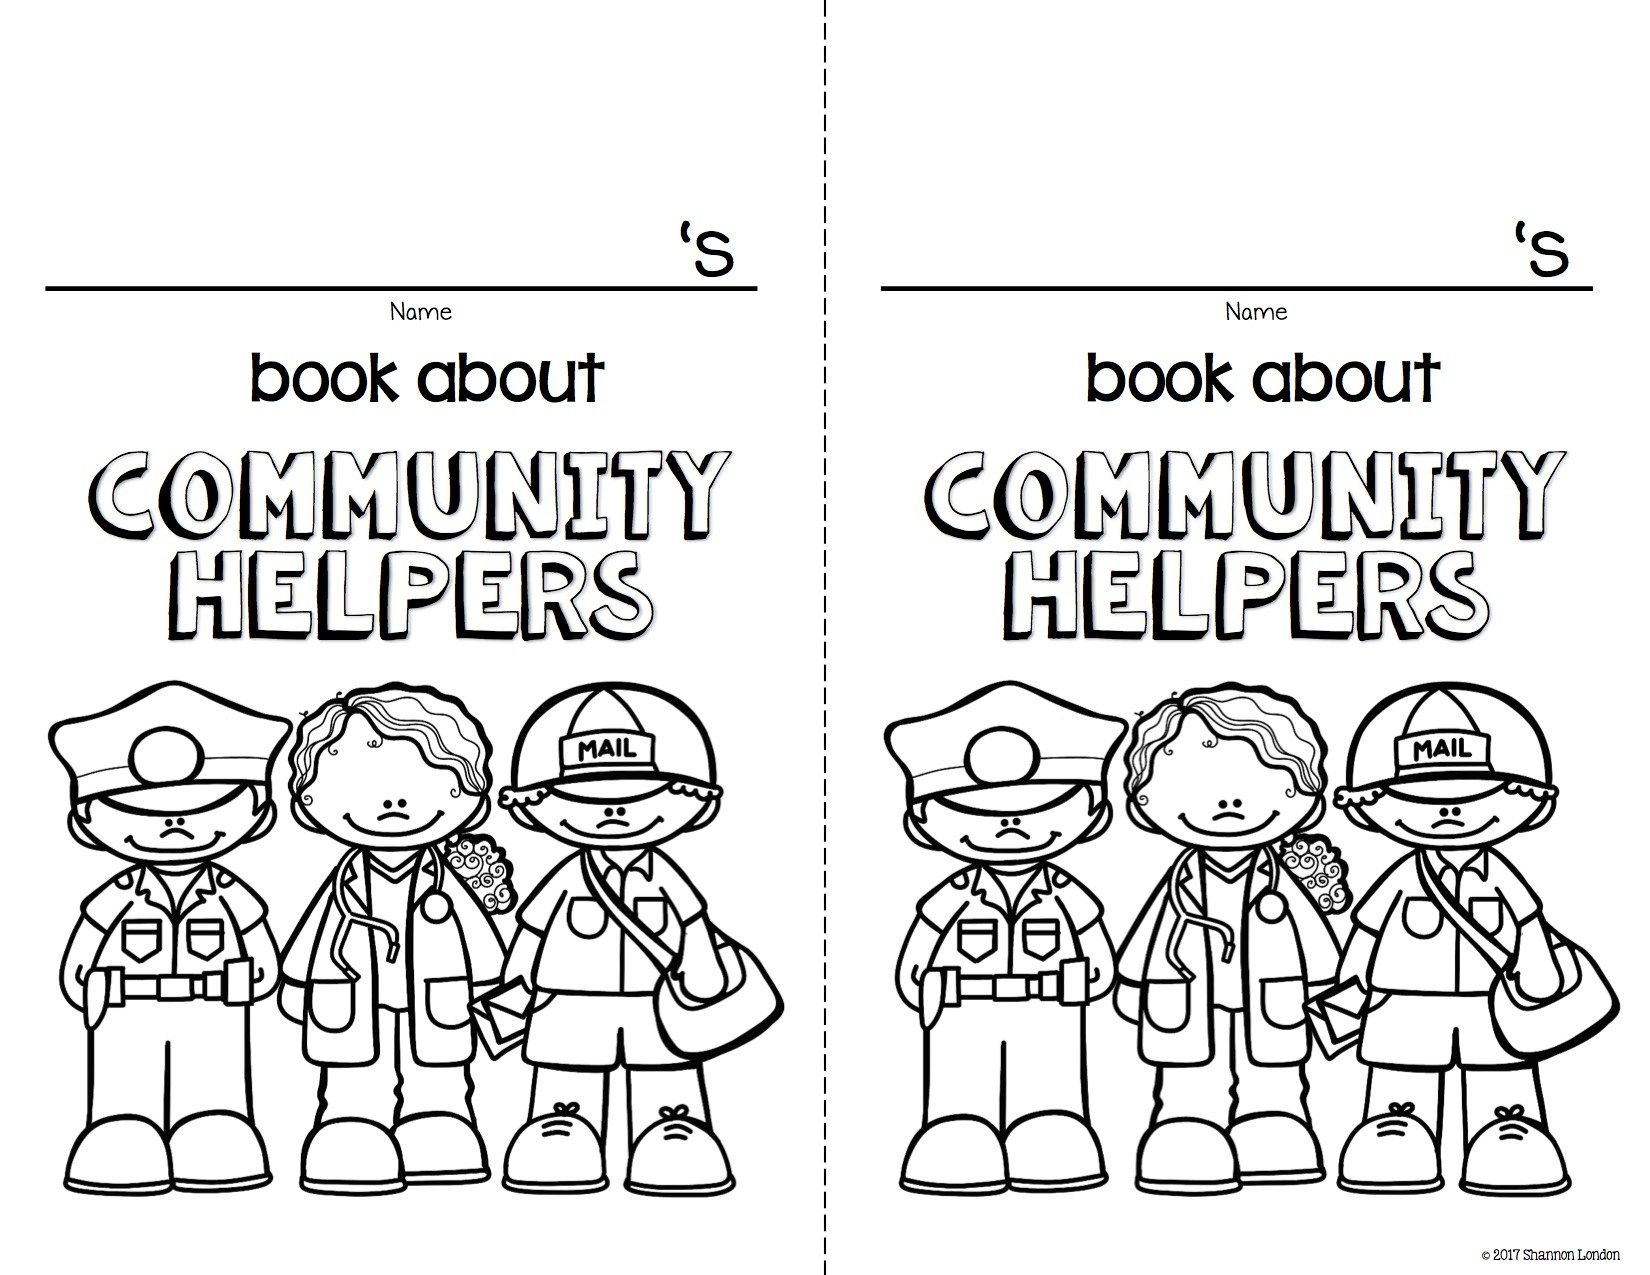 6 Reasons This Community Helpers Pack Is The Best